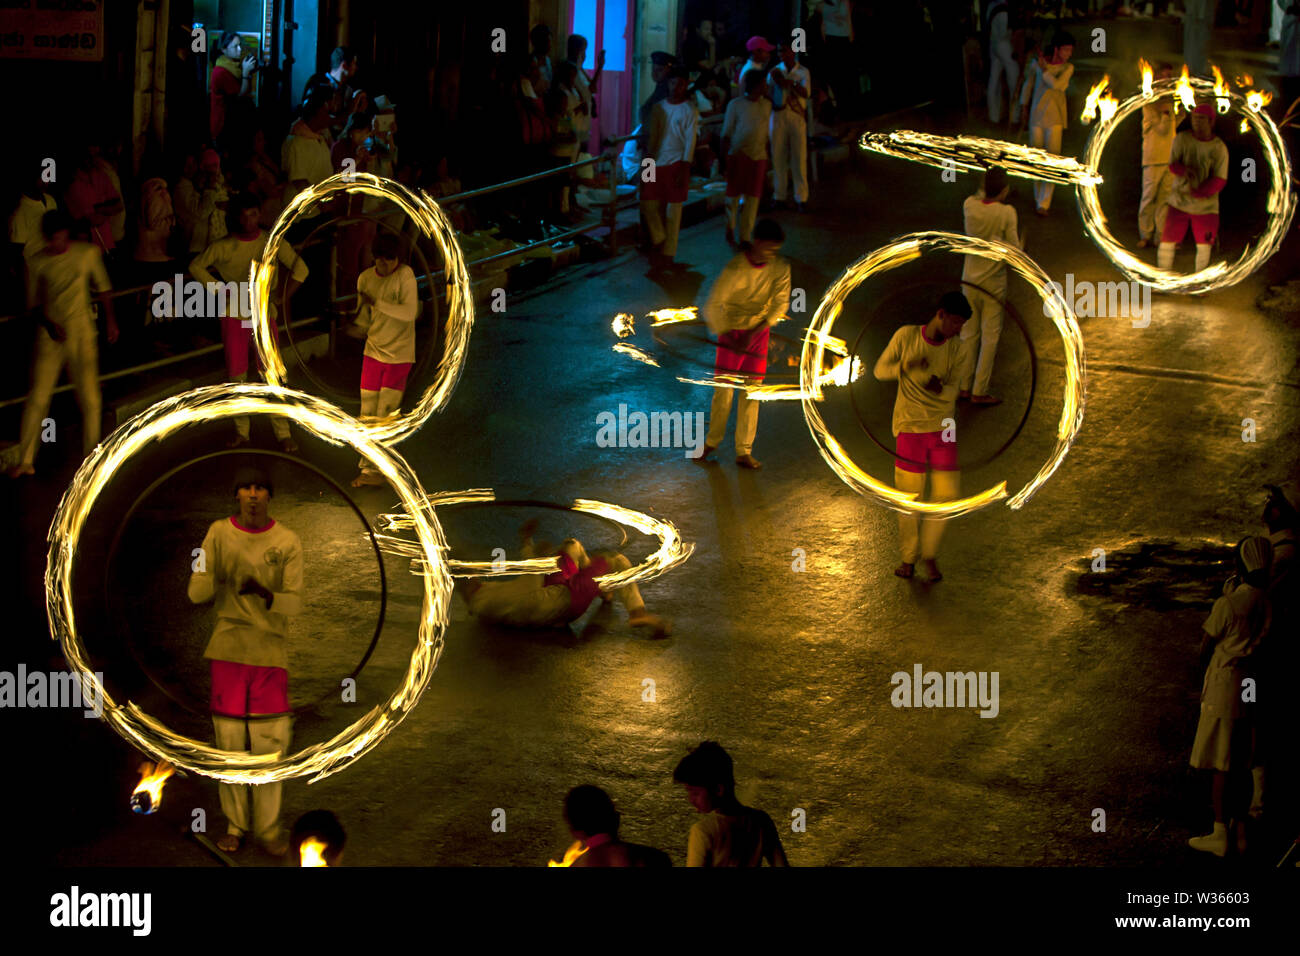 A spectacular site as Fire Ball Dancers perform along Colombo Street in Kandy during the Buddhist Esala Perahera (procession) in Sri Lanka. - Stock Image